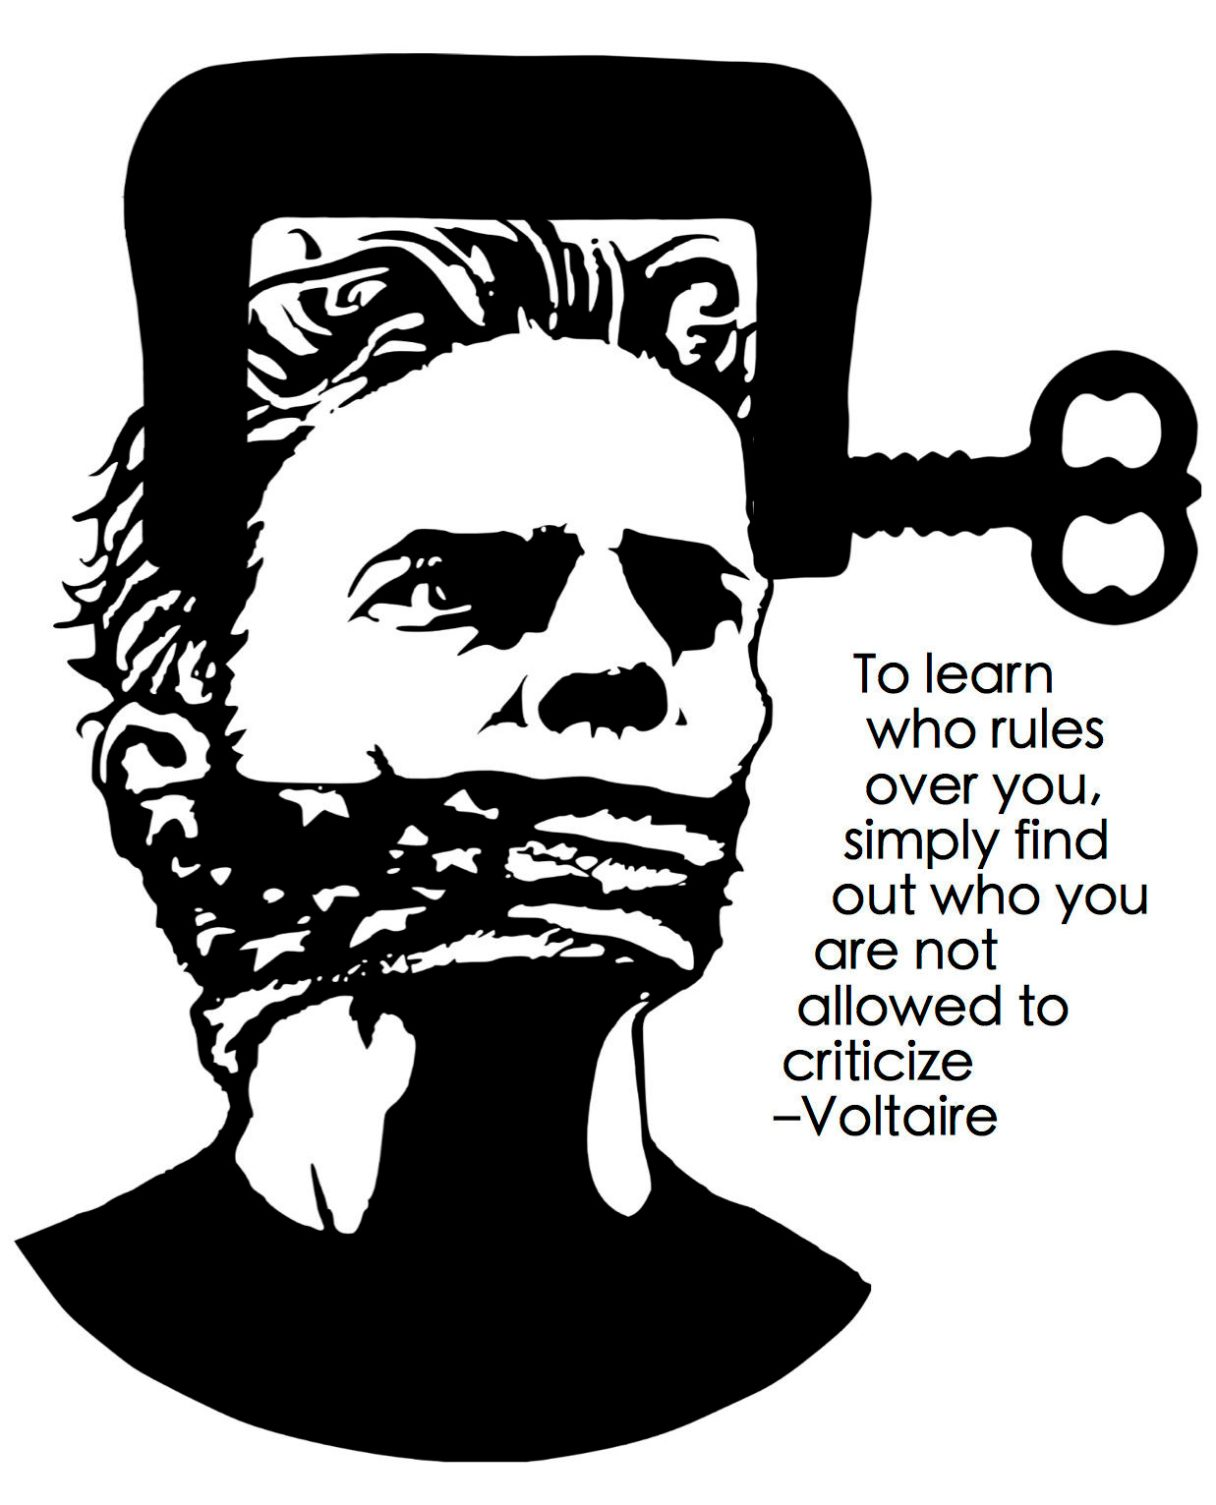 """Dagens citat – Voltaire: """"To learn who rules over you, simply find out who you are not allowed to criticize."""" Originalillustrationer: pixabay.com. Citatillustration: Maria Busch"""